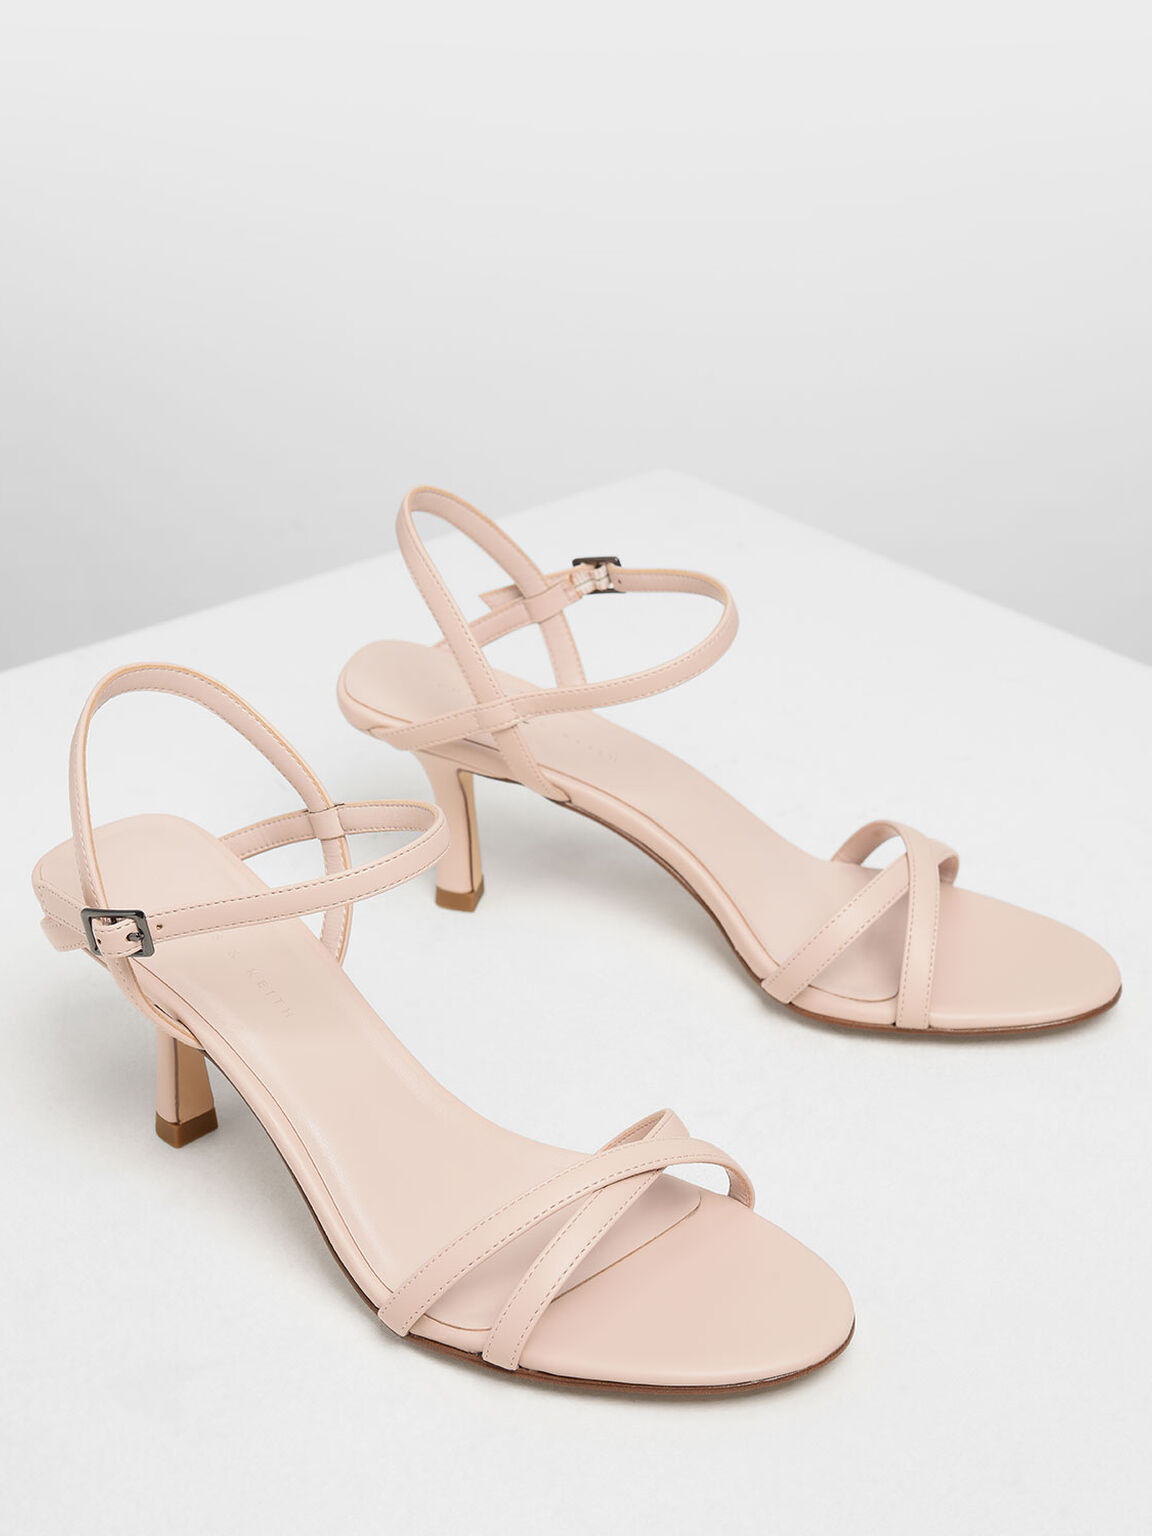 Criss Cross Blade Heel Sandals, Pink, hi-res